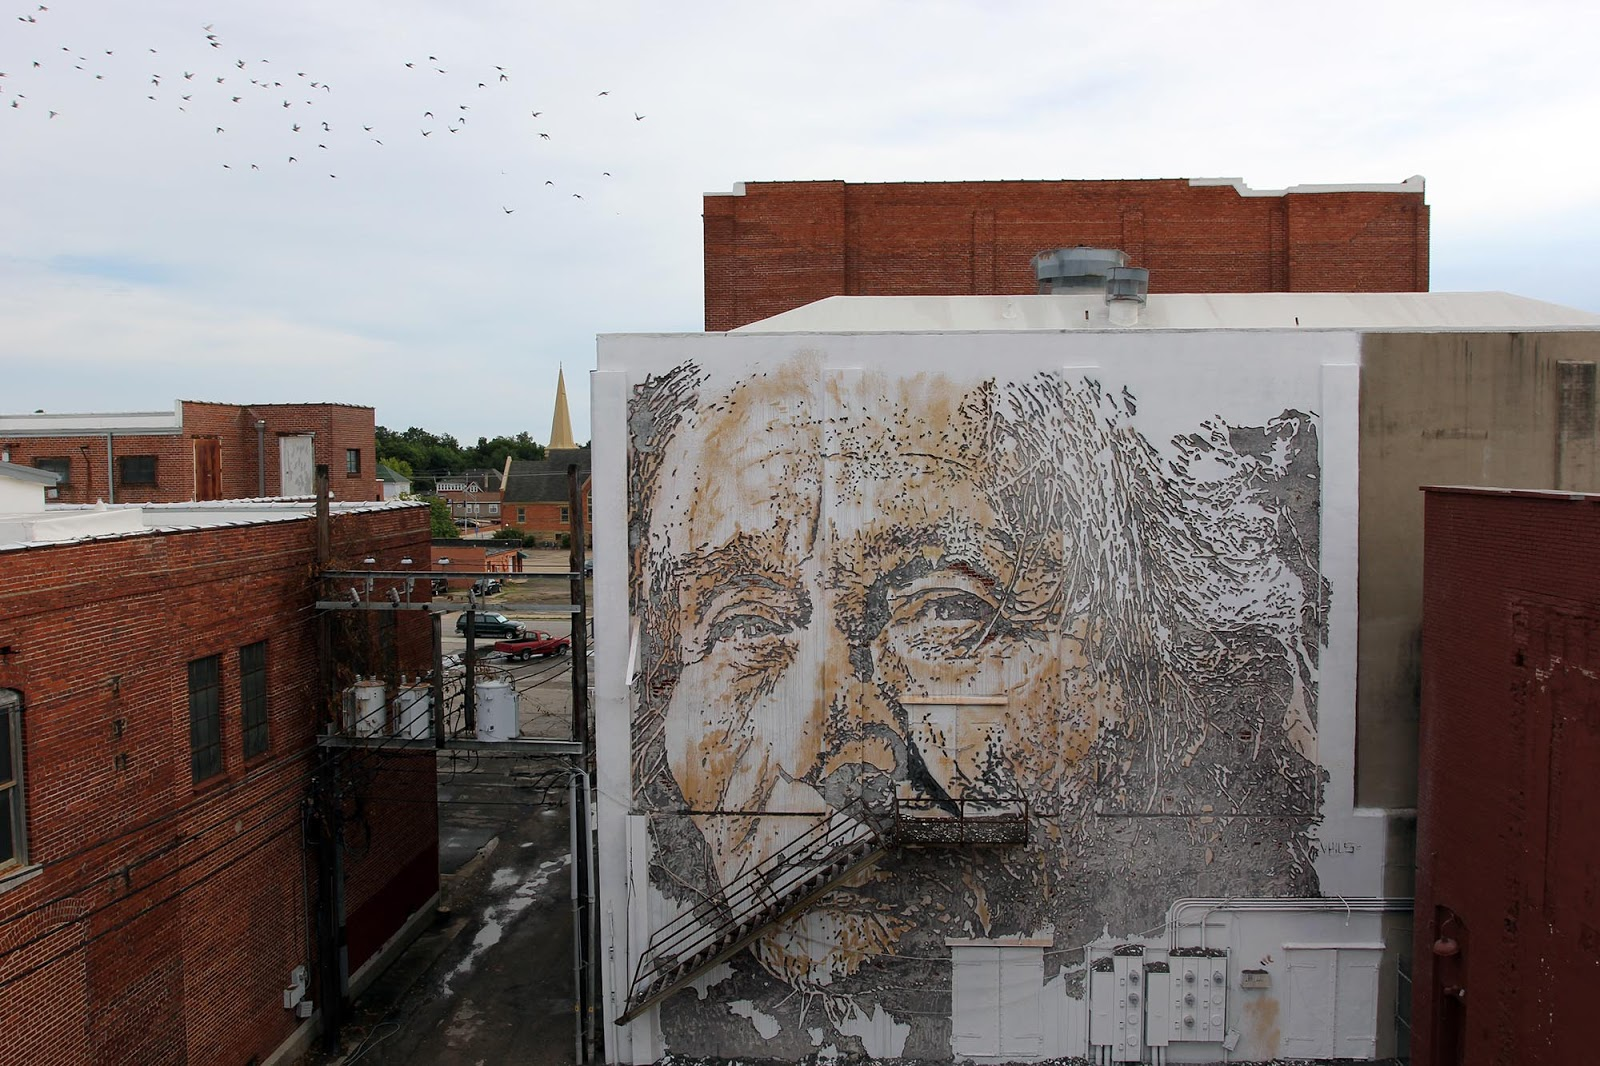 unexpected 15 vhils unveils a new mural in fort smith arkansas